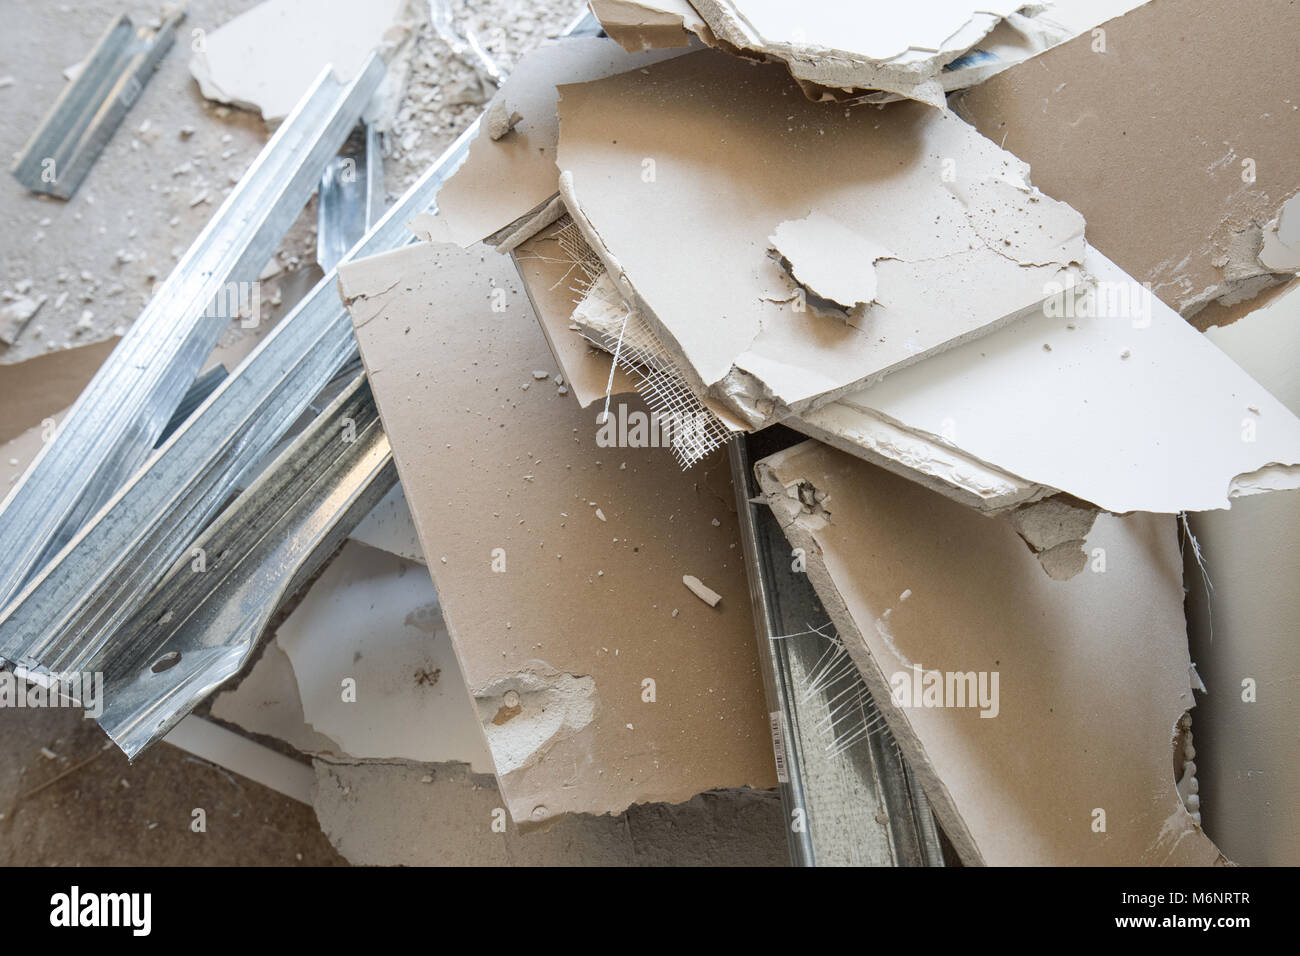 Heaps of rubble, pices of gypsum plasterboard and mounting rails. Mess  and demolition, ruins, renovation works - Stock Image